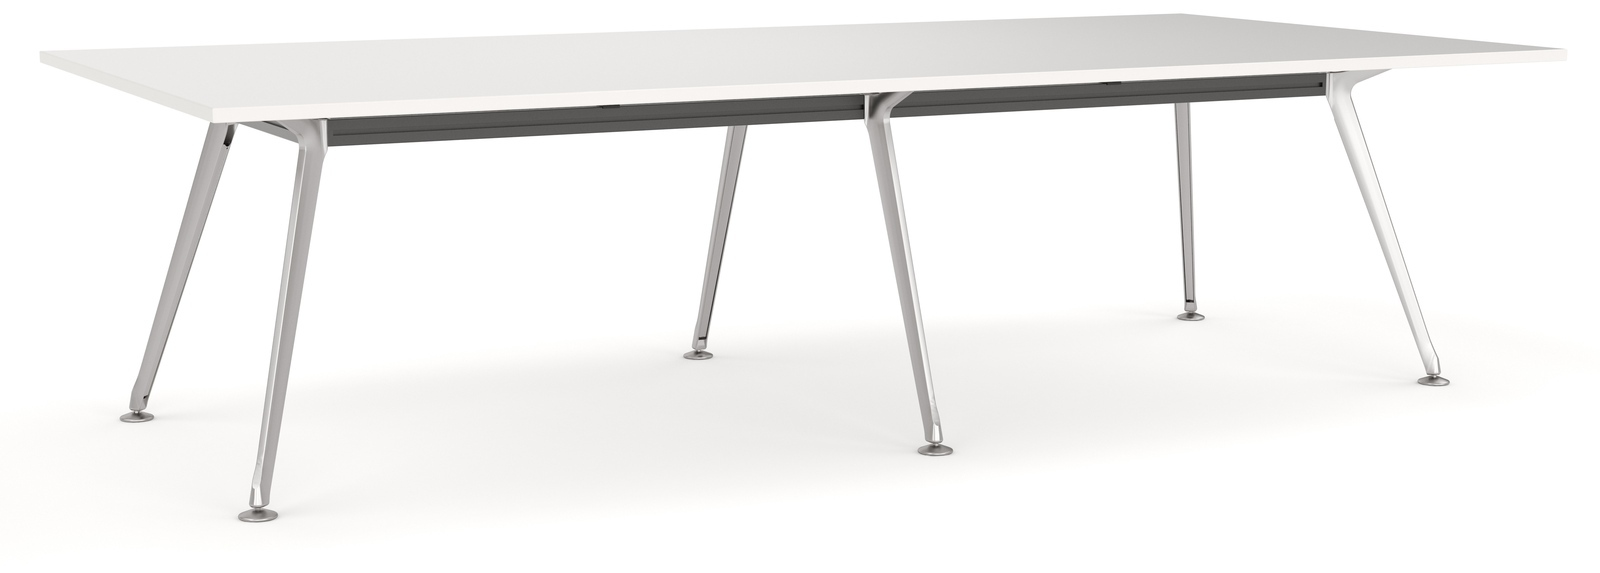 Team White Executive Boardroom Table Office Stock